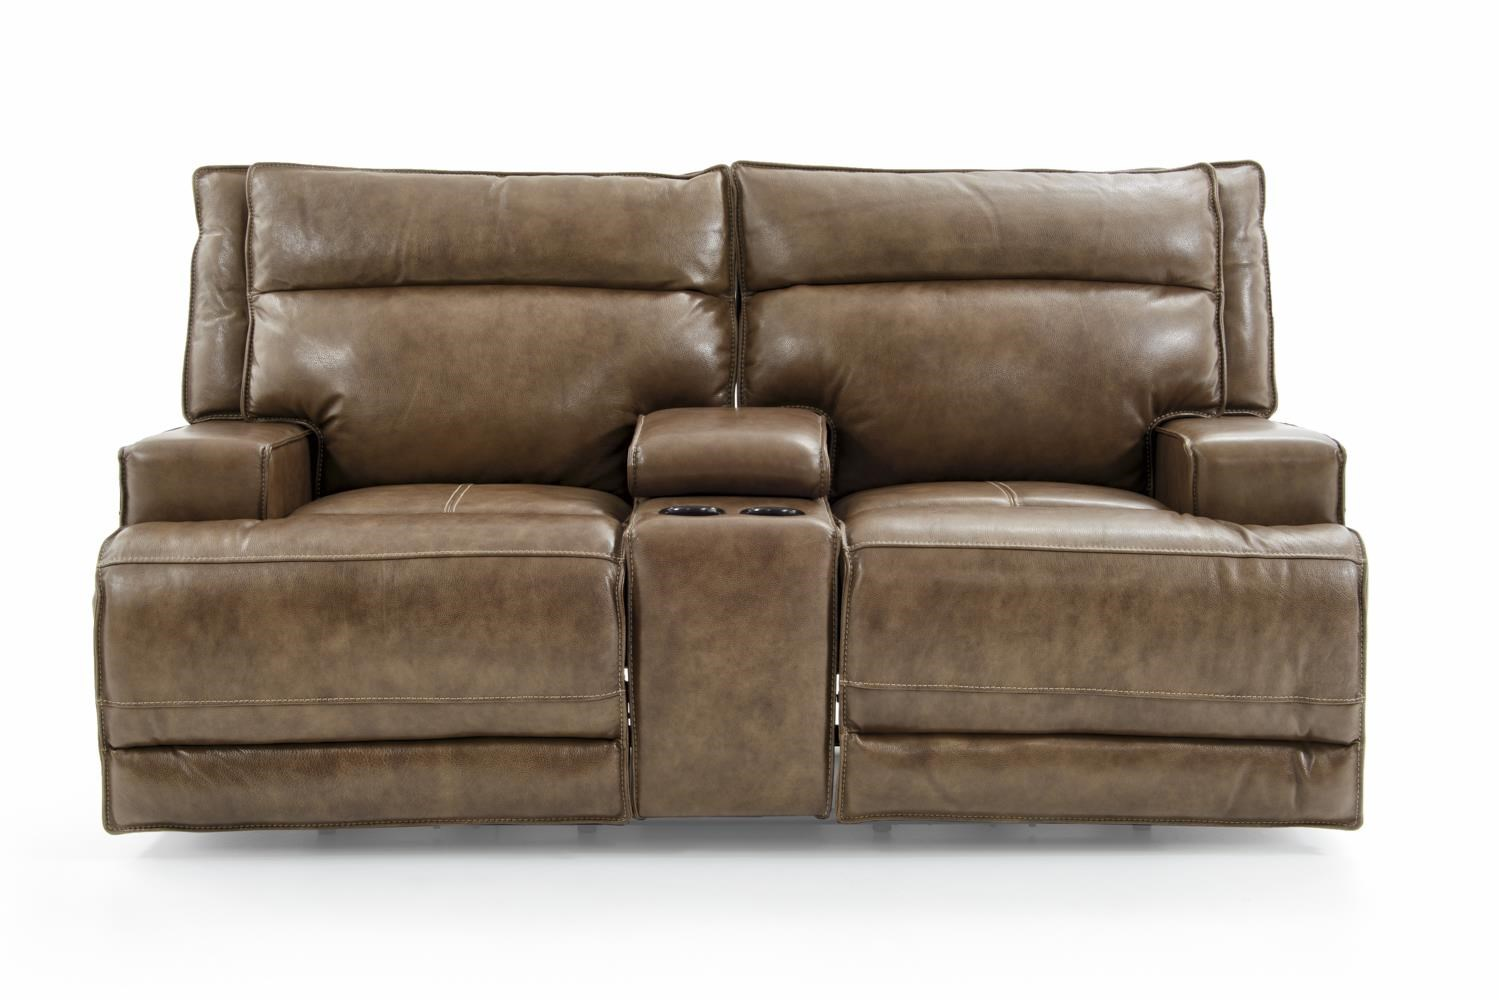 Futura Leather E1270 E1270 248 1421h Sanibel Power Reclining Loveseat With Cupholder Console And